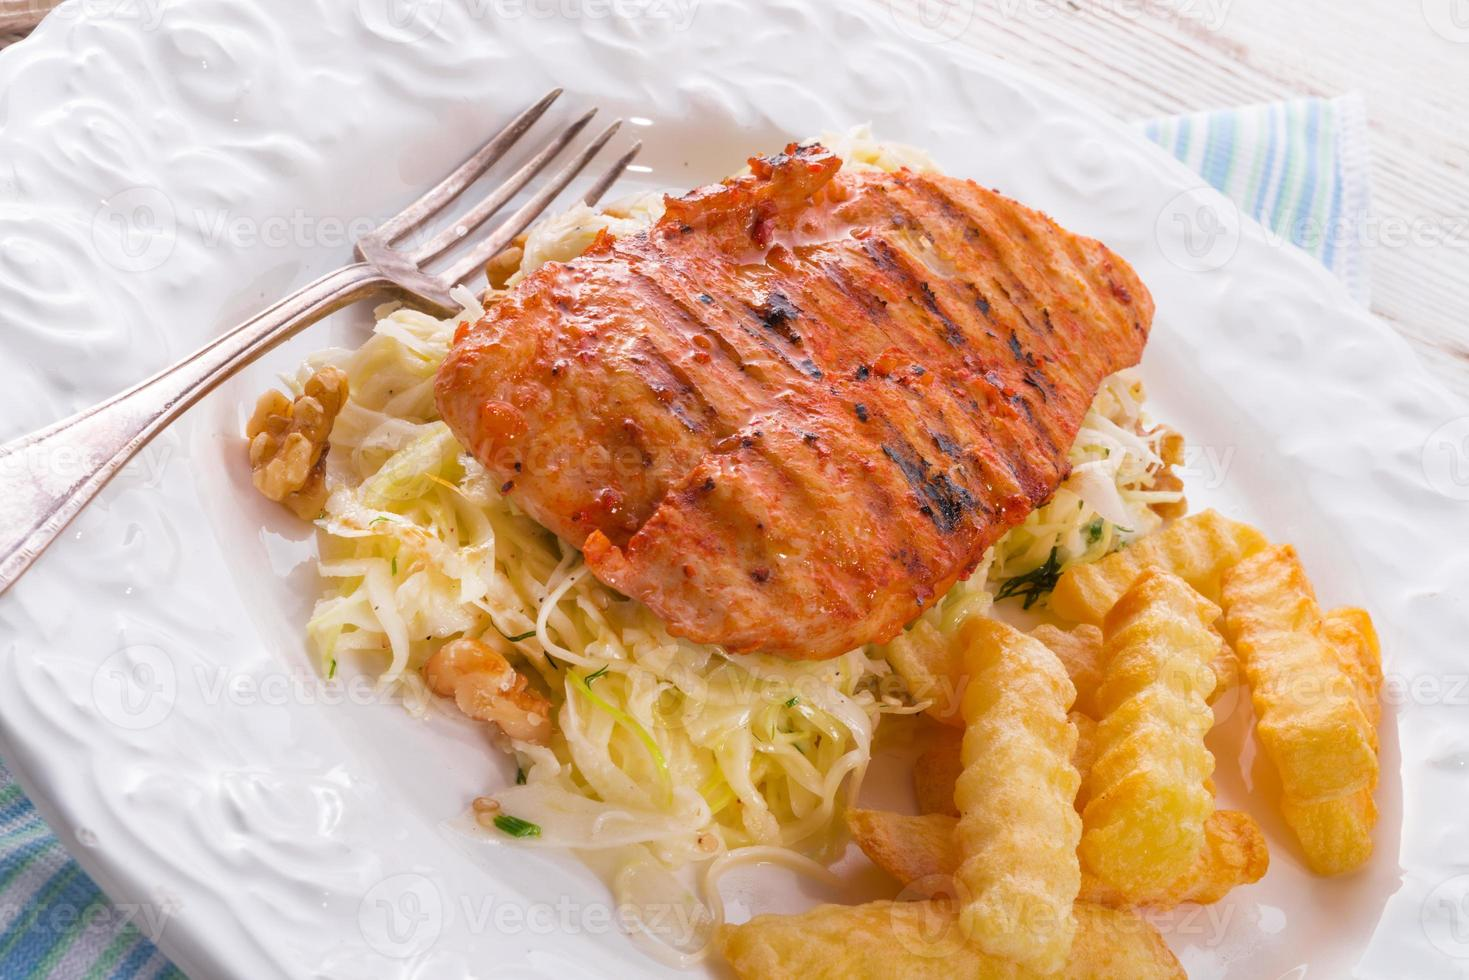 grilled chicken, cabbage salad with nuts and chips photo